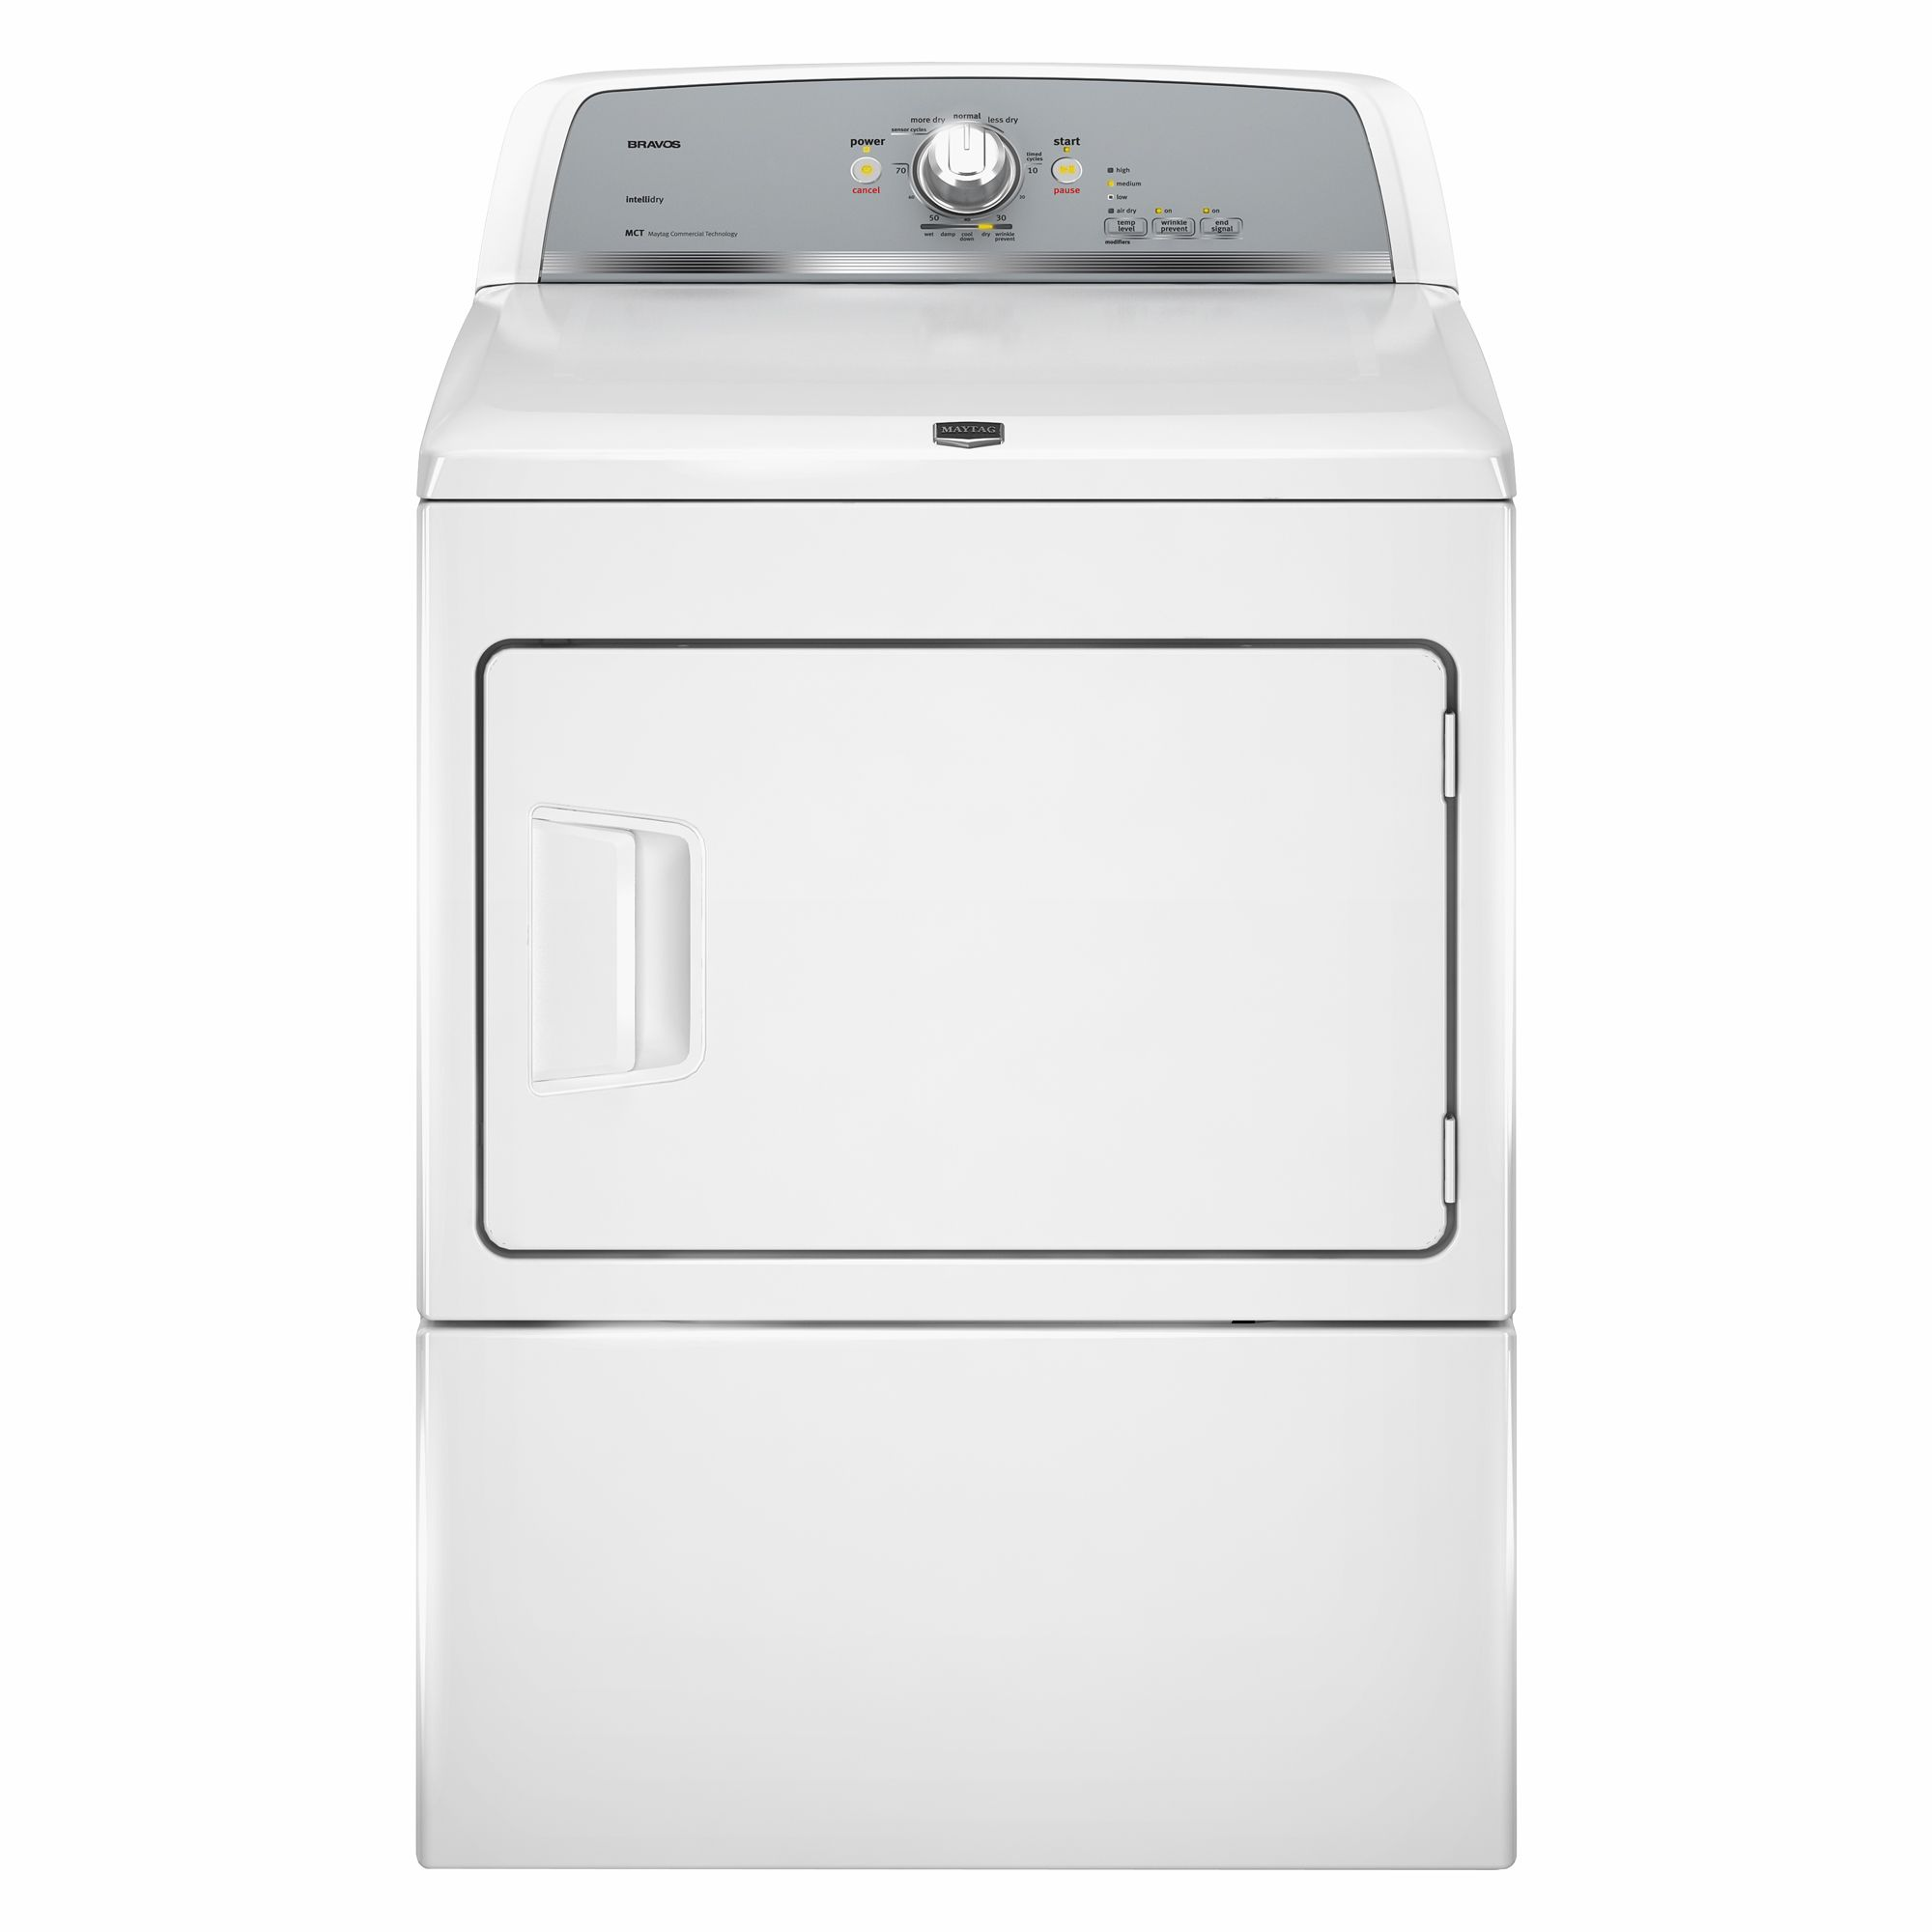 7.4 cu. ft. Gas Dryer